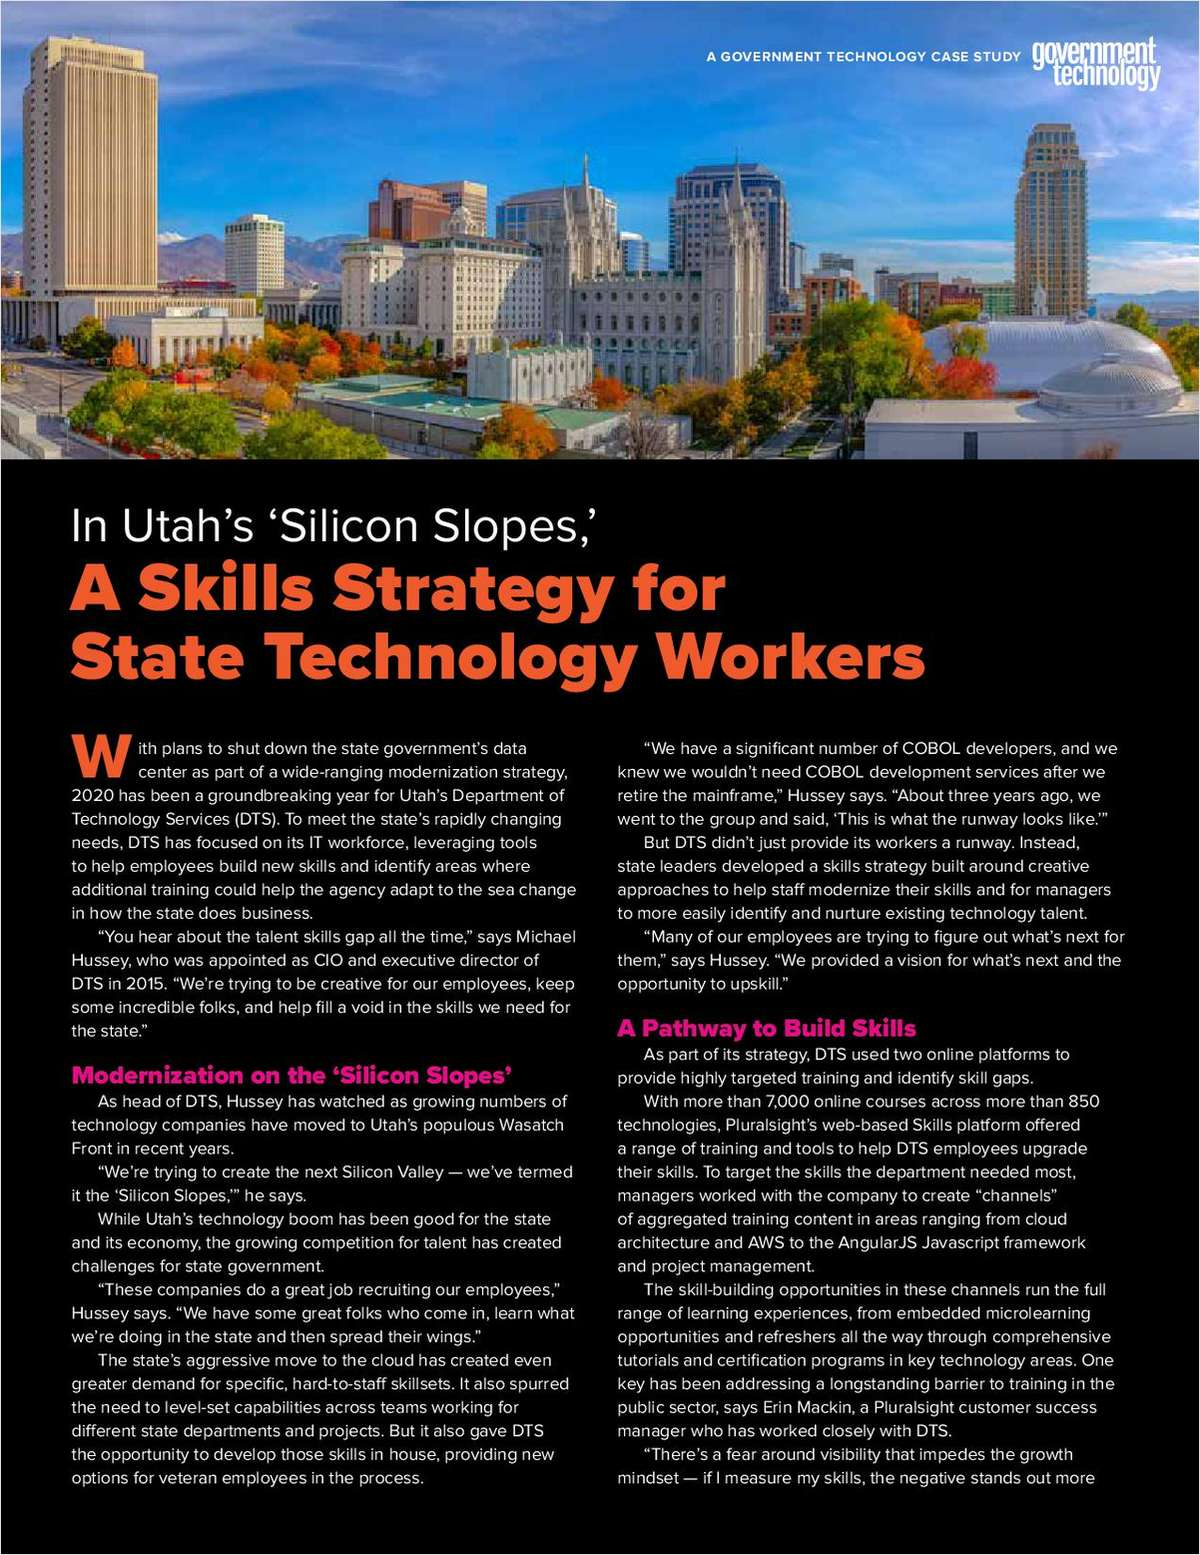 In Utah's 'Silicon Slopes': A Skills Strategy for State Technology Workers